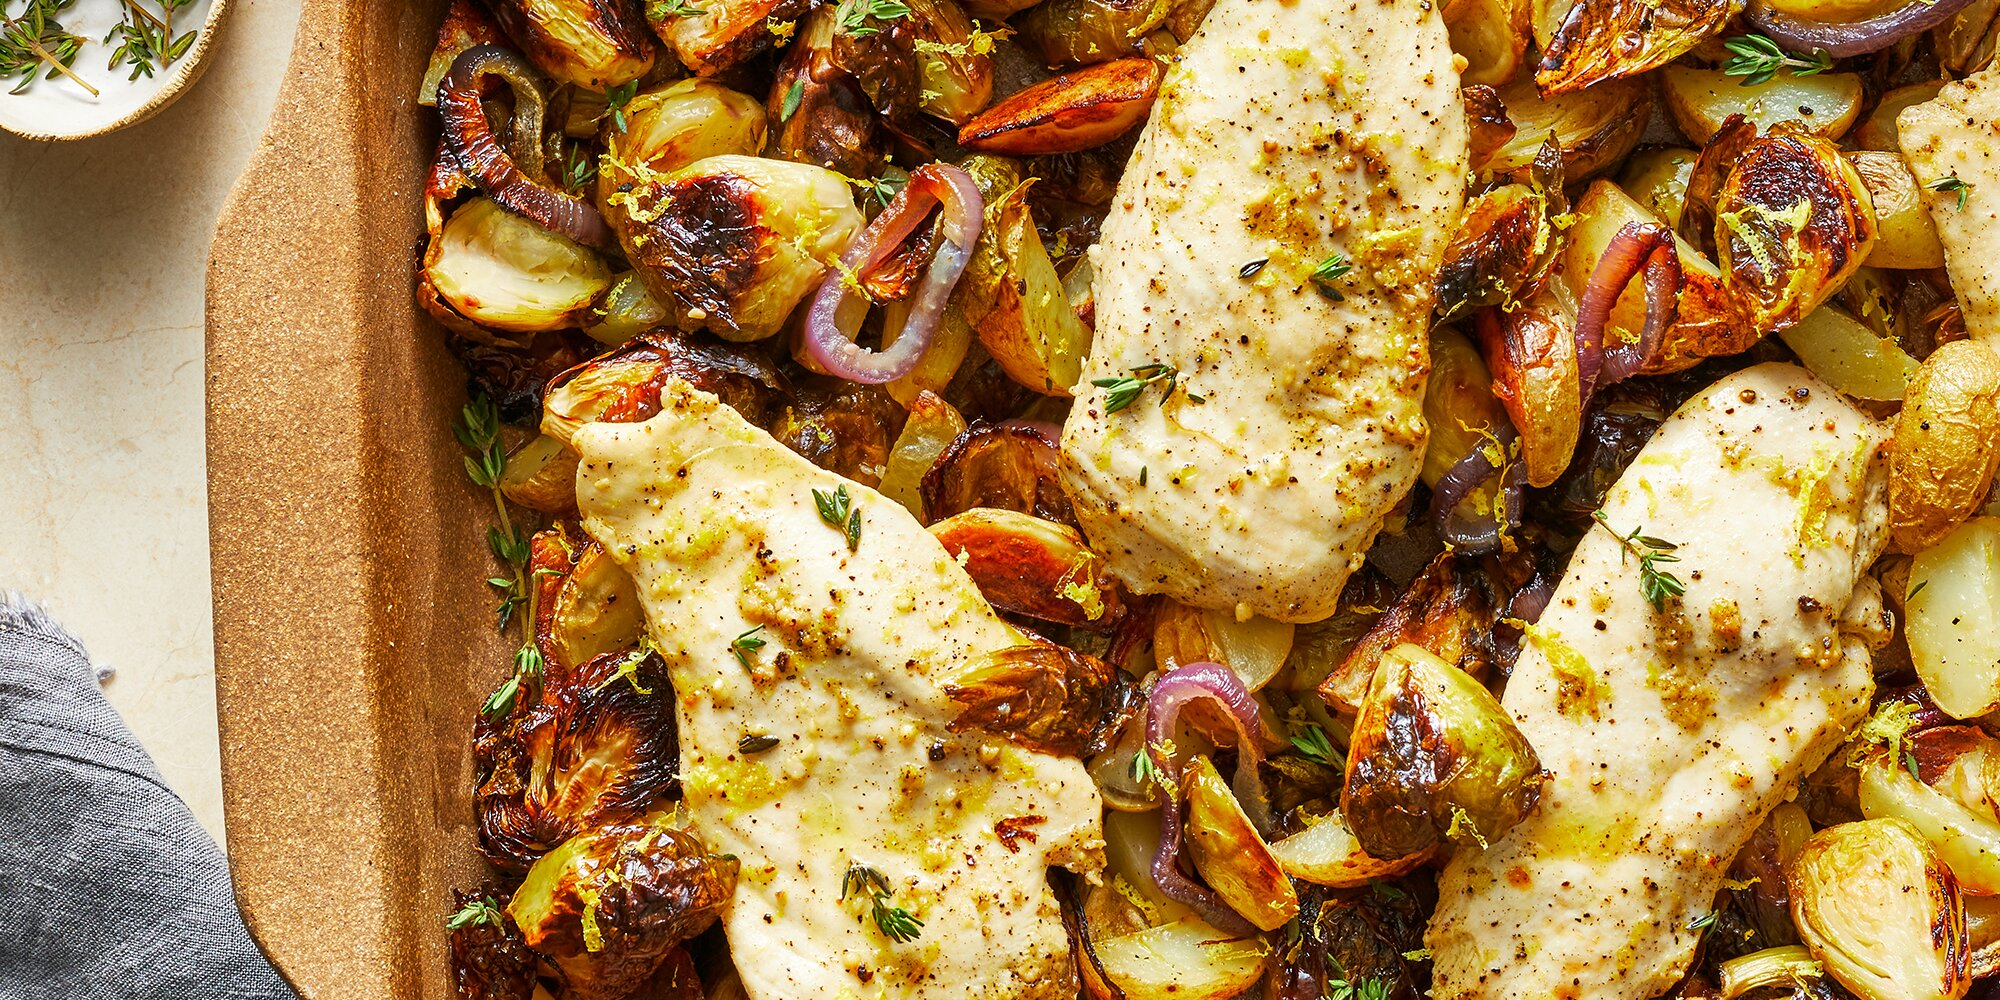 Lemon-Garlic Dump Dinner with Chicken, Potatoes & Brussels Sprouts